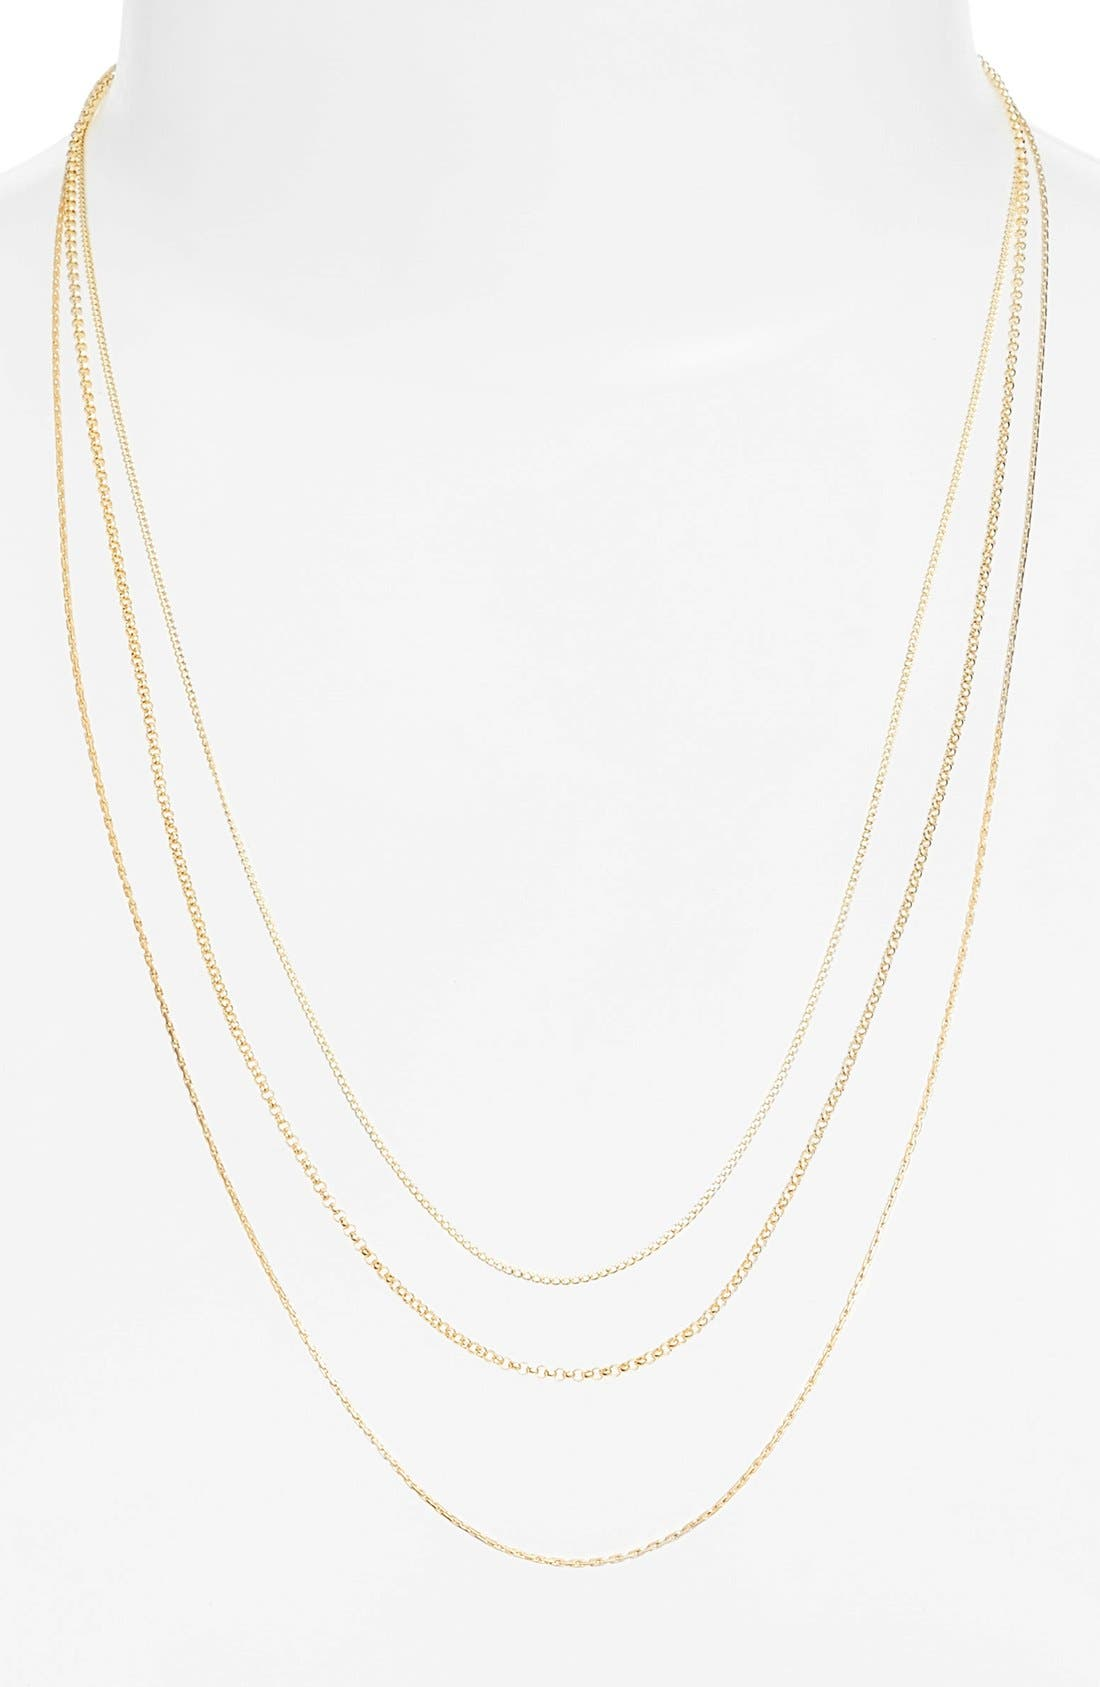 Alternate Image 1 Selected - Leah Alexandra Multistrand Chain Necklace